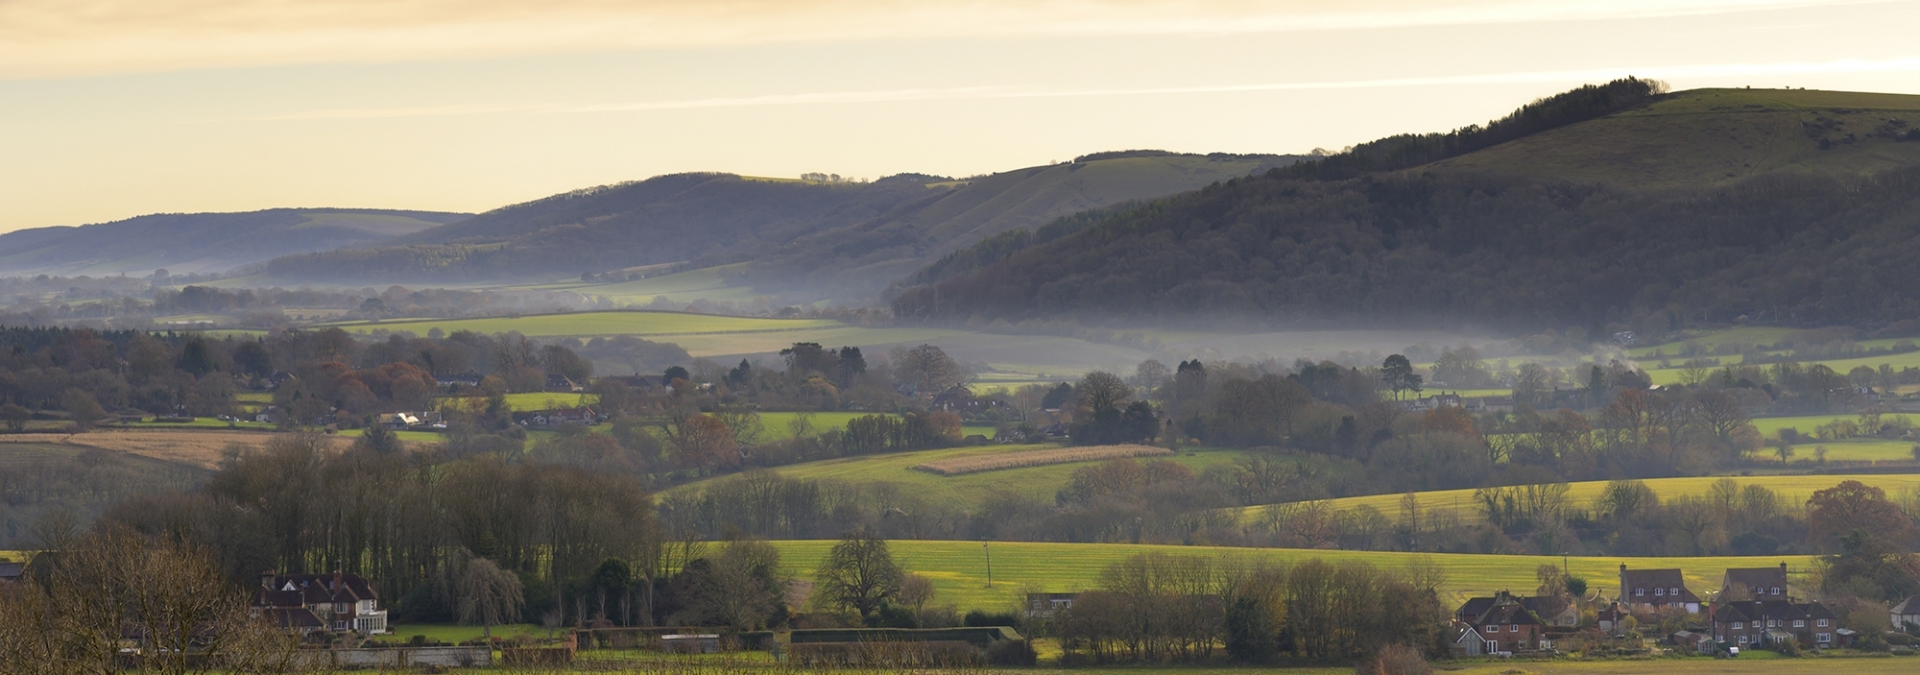 Stunning South Downs scenery